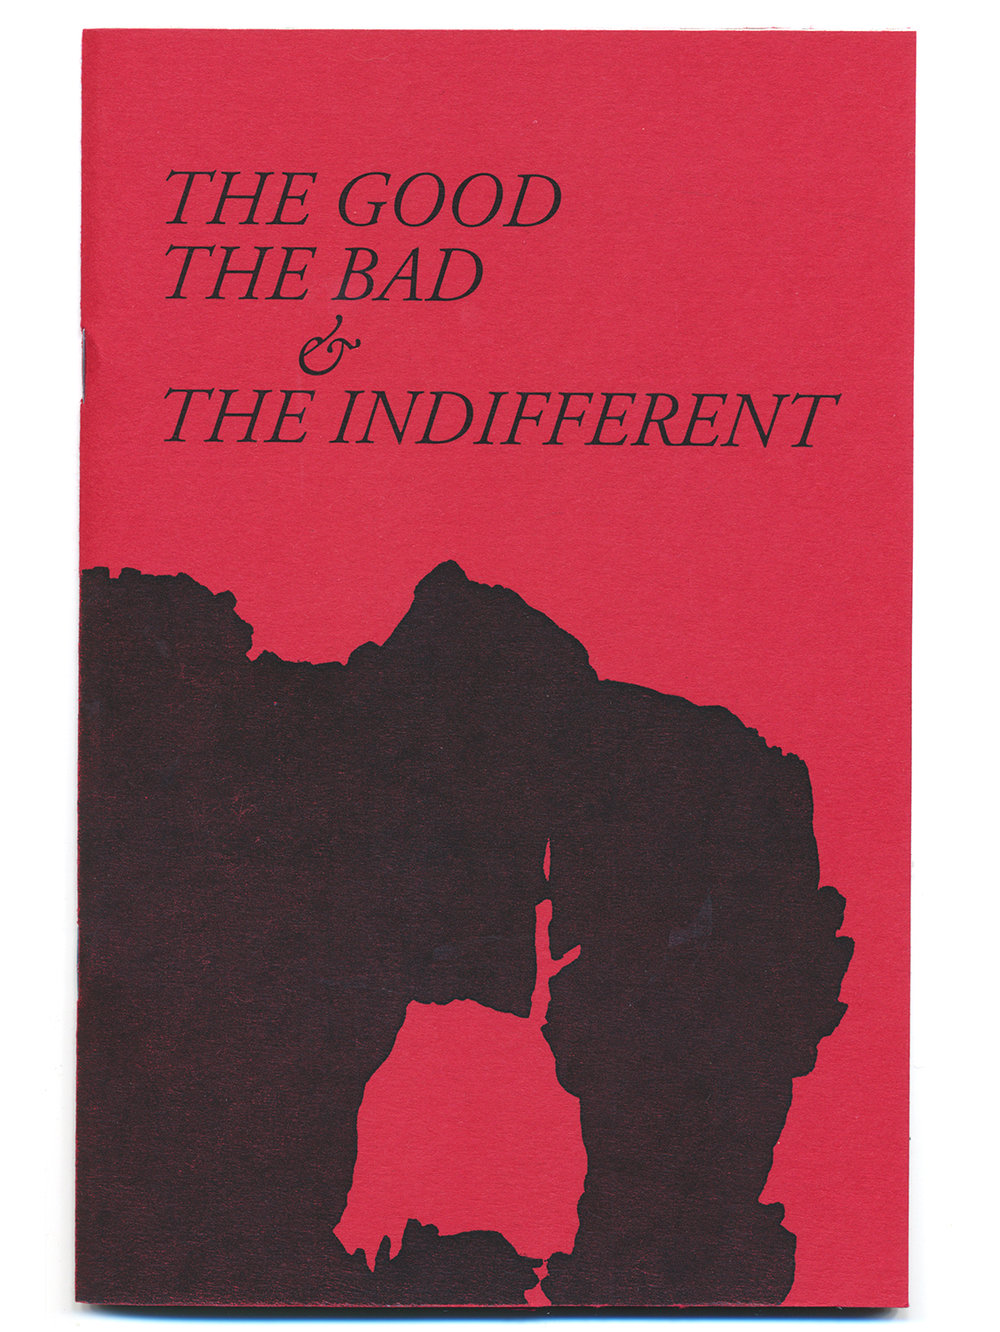 The Good, The Bad, & The Indifferent